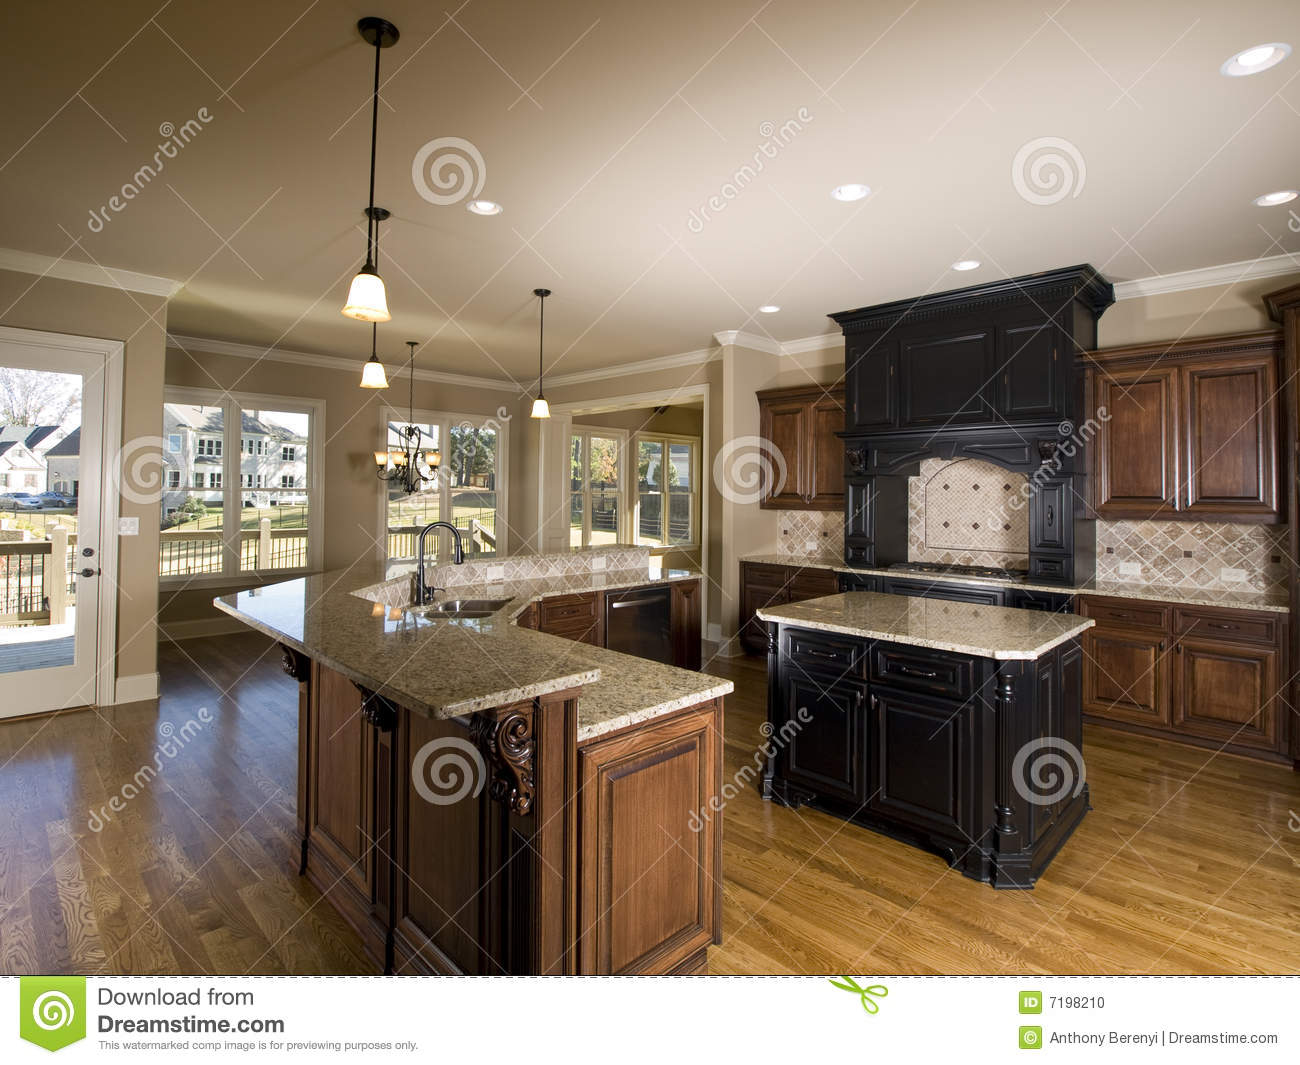 Center Island Kitchen Design1280960 Kitchen With Center Island Kitchen Islands With